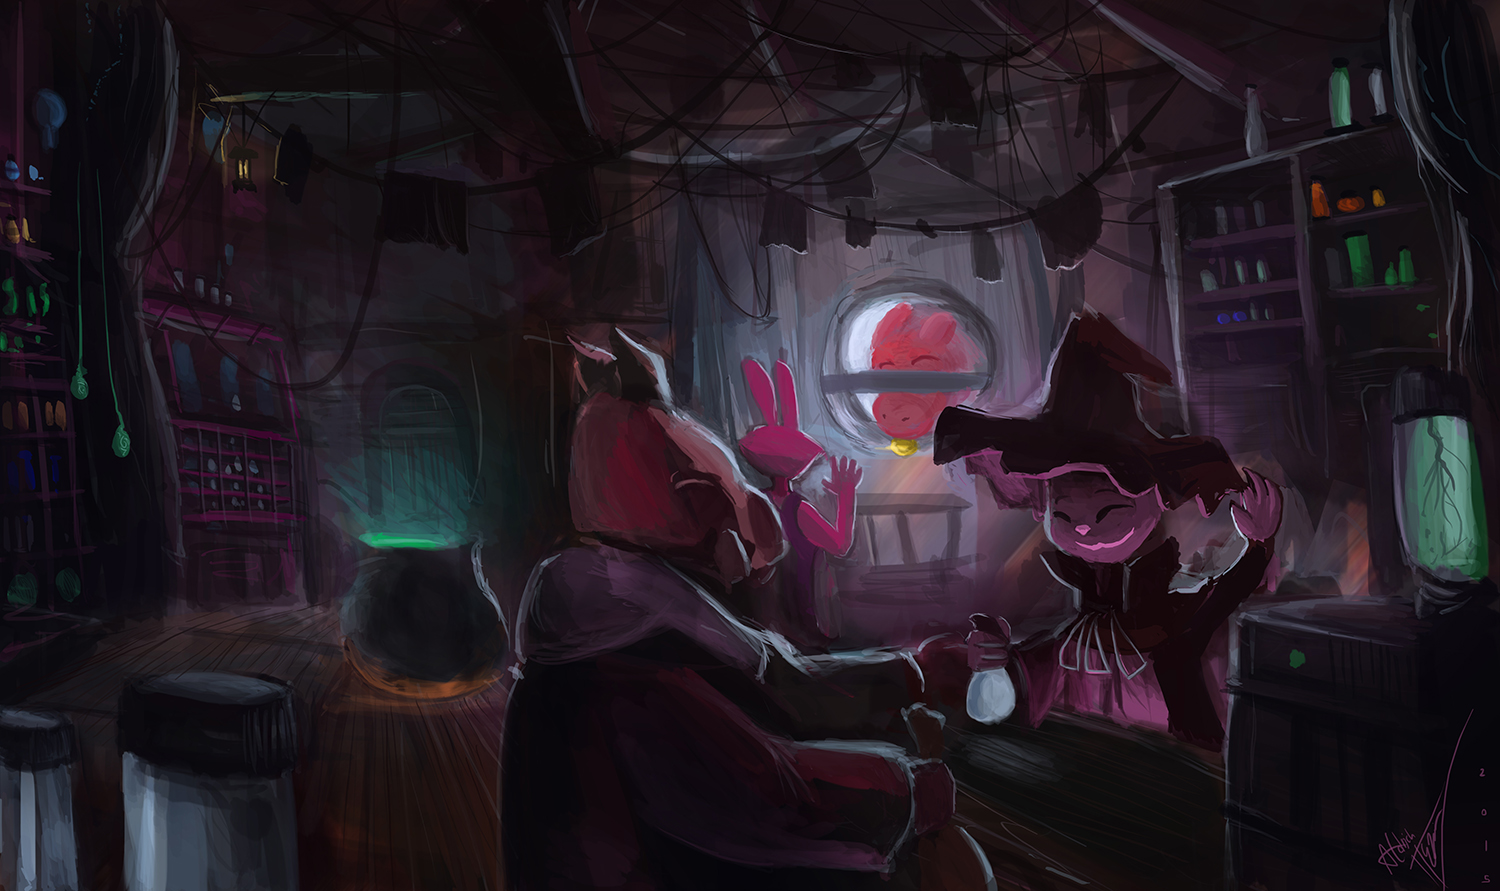 Potion shop (animation by Temmie Chang)